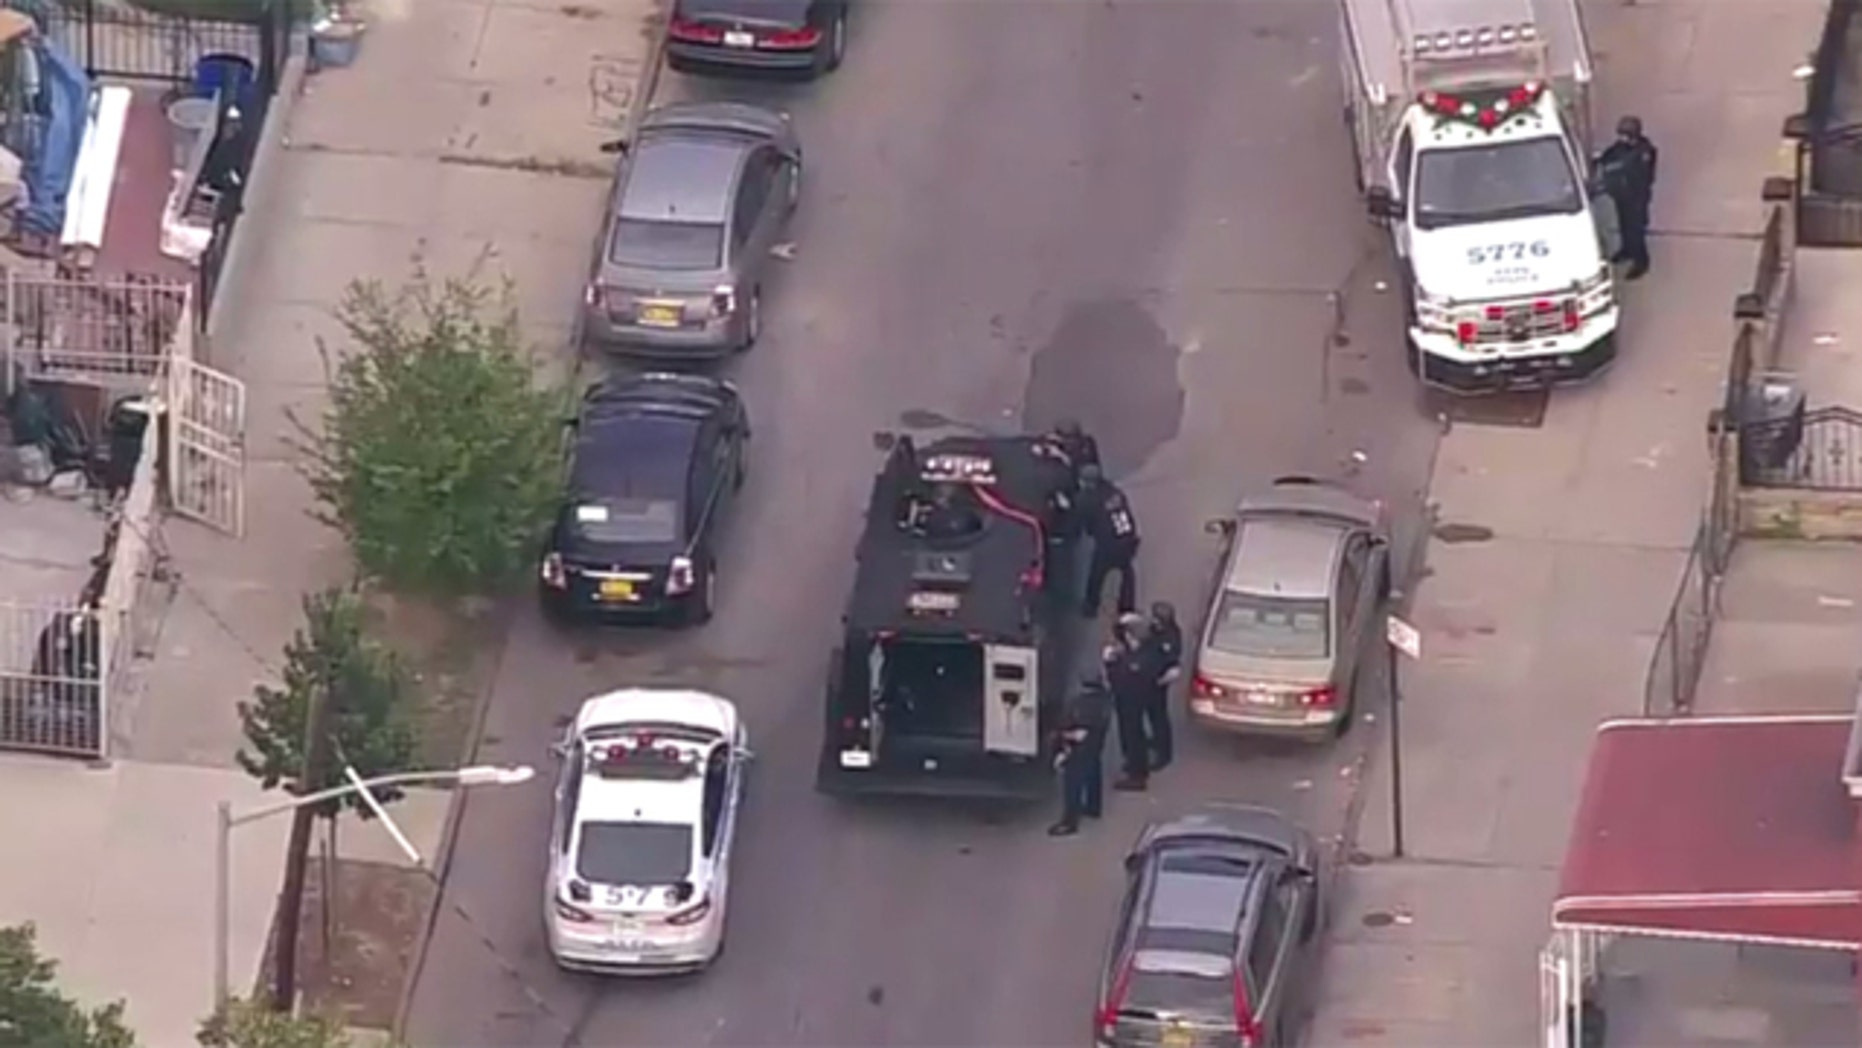 The scene of the shooting in Brooklyn, NY.